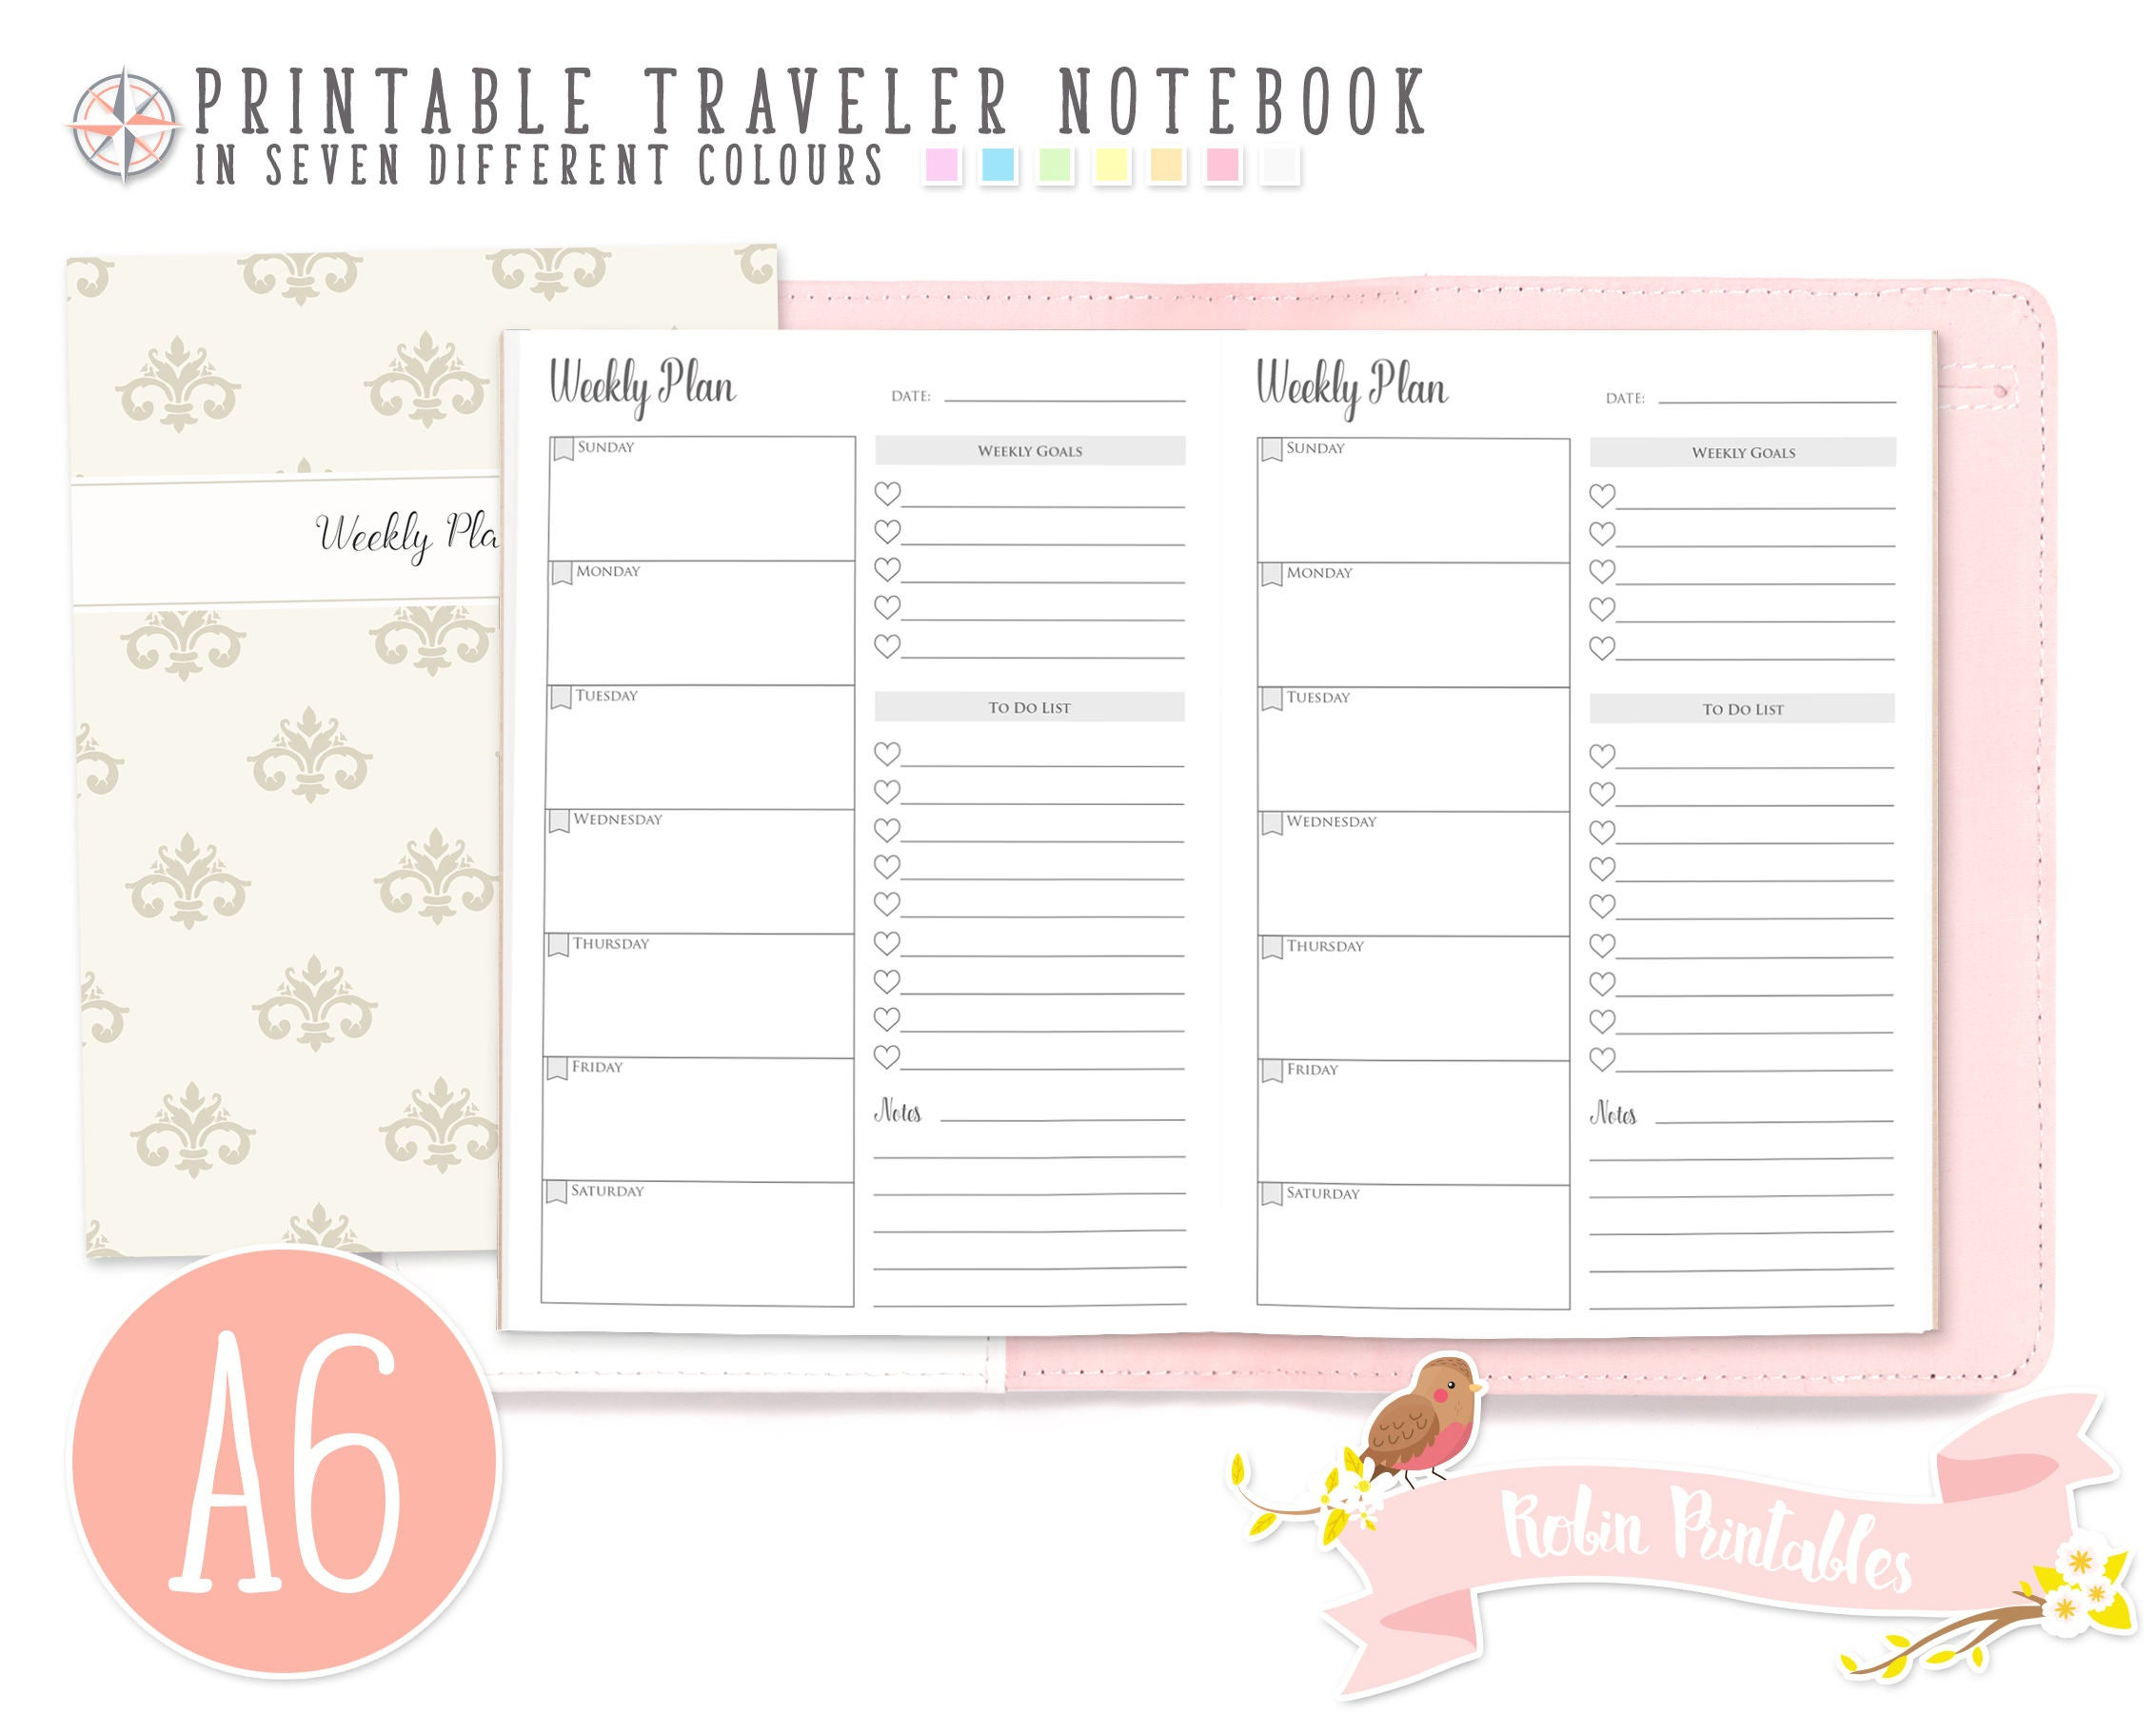 A6 Weekly Planner Sunday Start Traveler Notebook Refill. 4 X 6 Printable Tn  Download Personal Use. Weekly Schedule, Week Plan Inserts